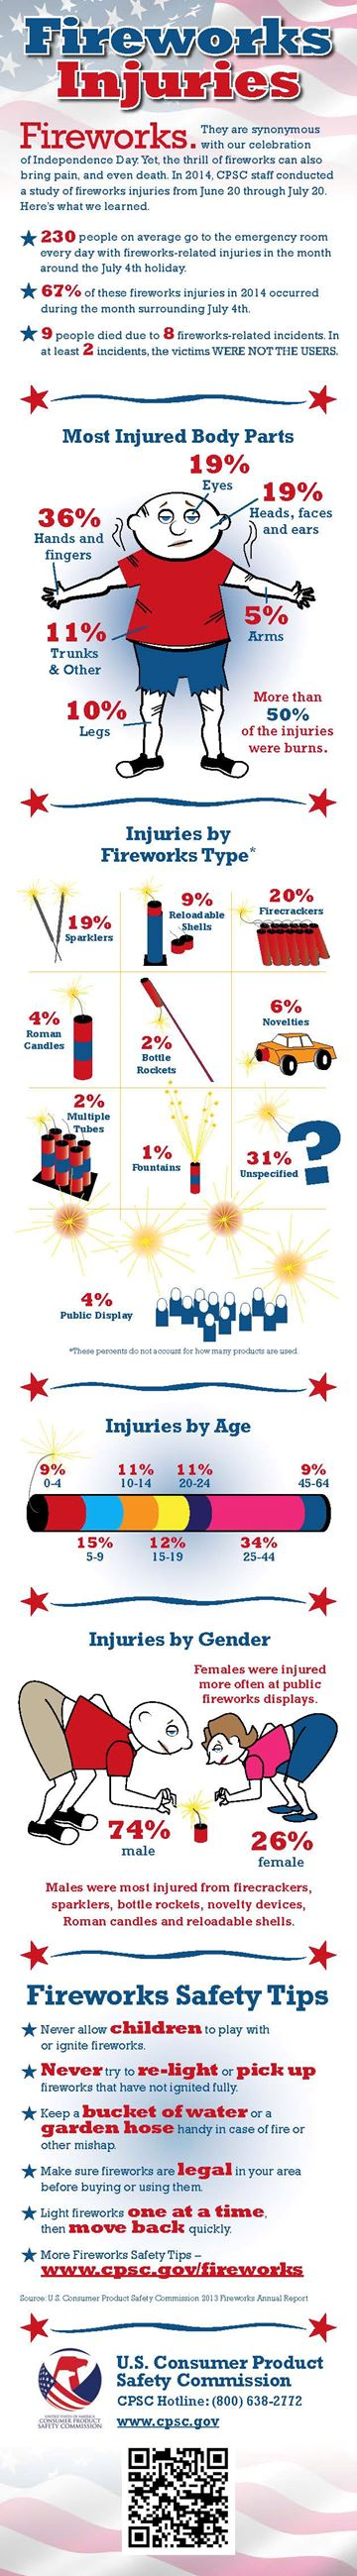 Fireworks-Infographic-2015-web